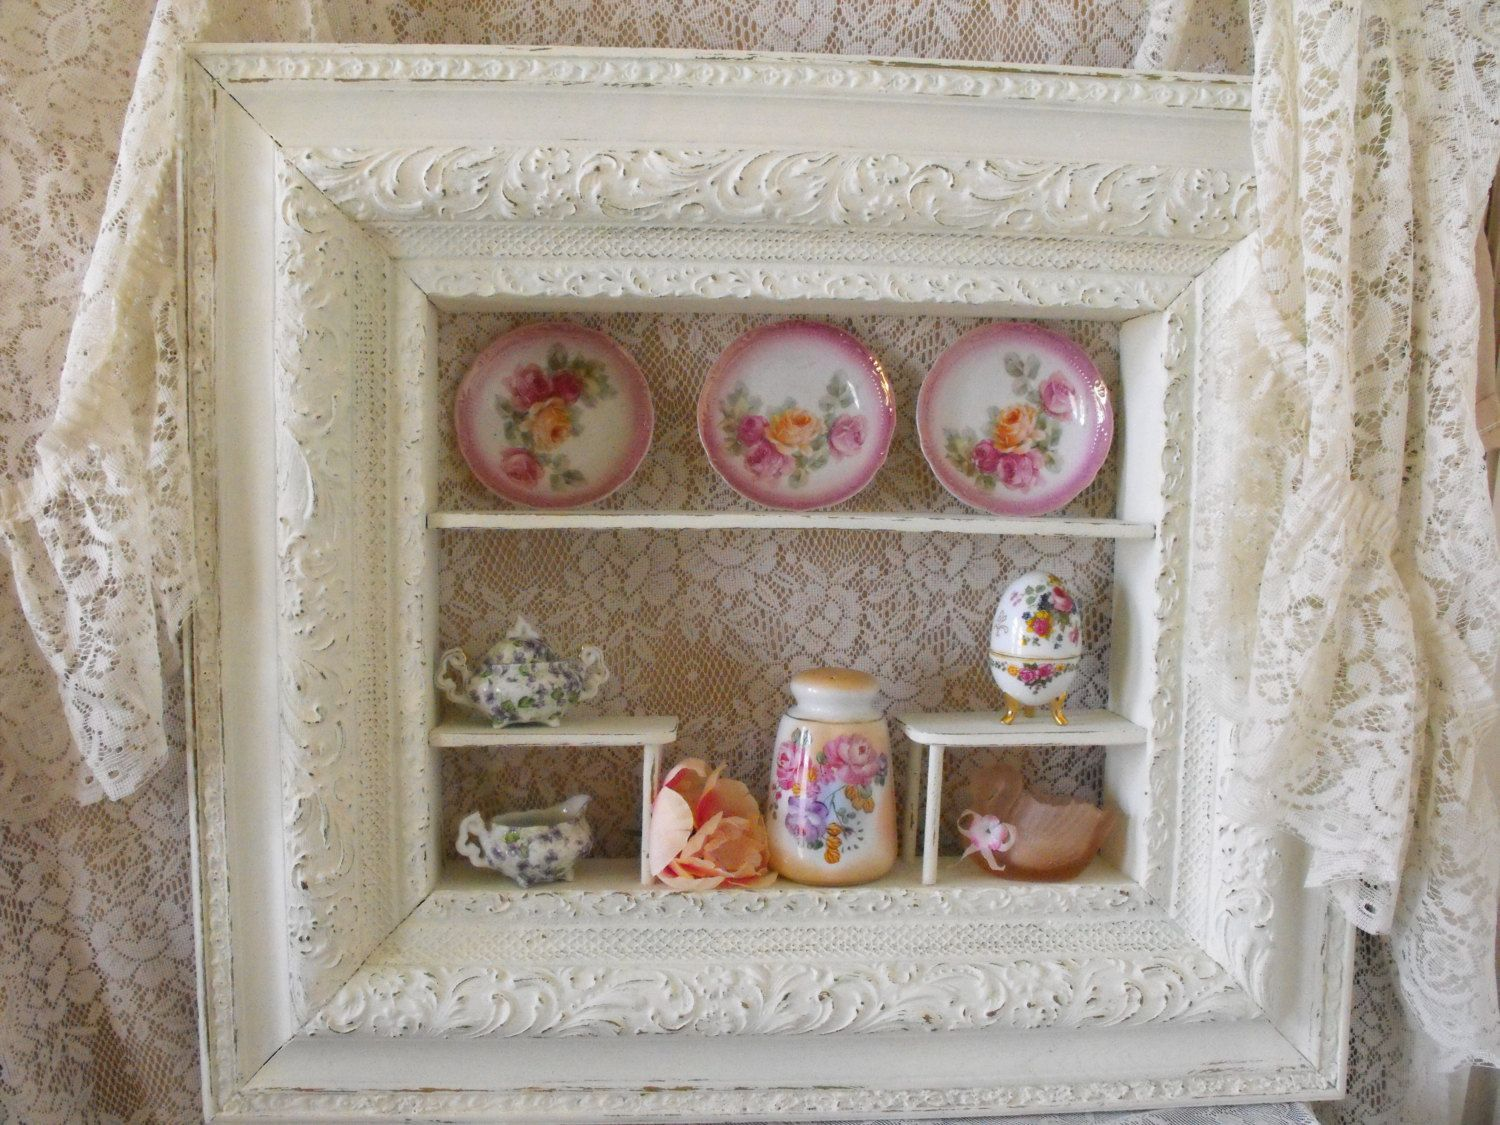 Reserve SC Large Antique Shadowbox/Curio Cabinet/Wall Storage   RETRO    Shabby Chic   Wall Cabinet  French Style Storage   Painted White